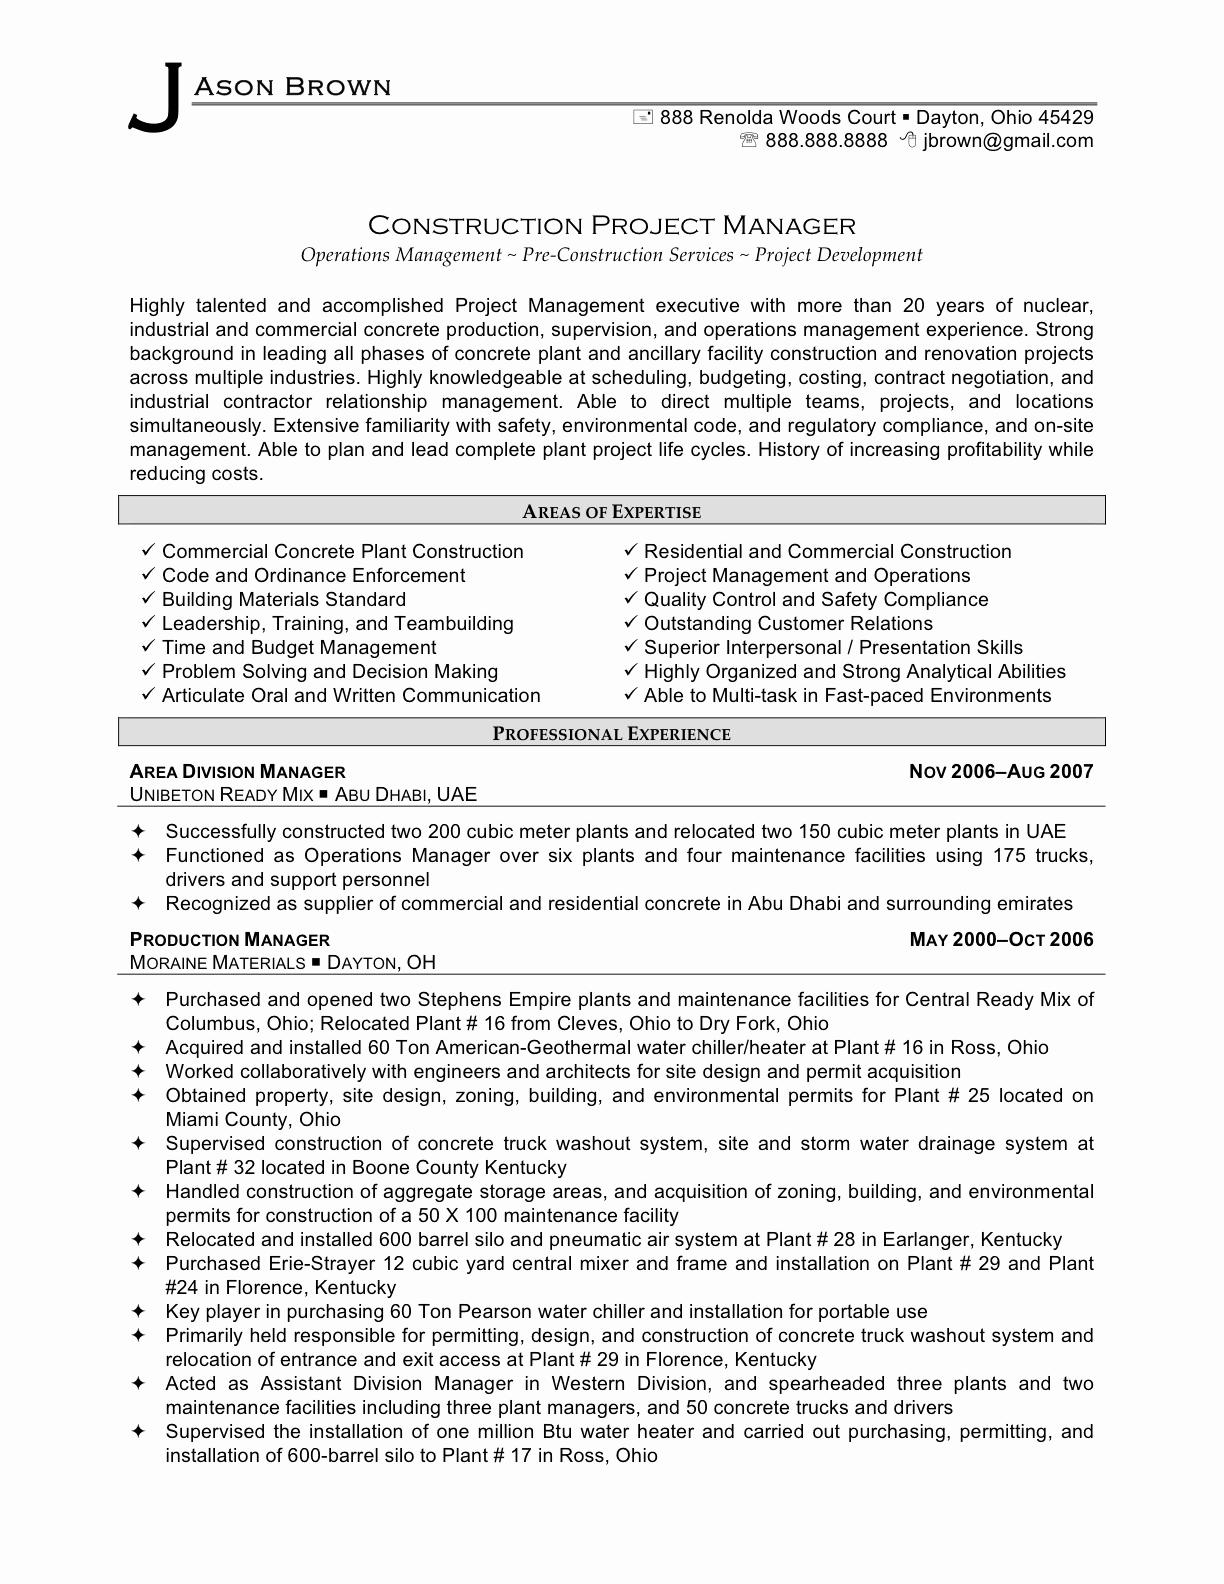 Project Coordinator Resume Samples Lovely Oil And Gas Resume With Project Management Resume Templates